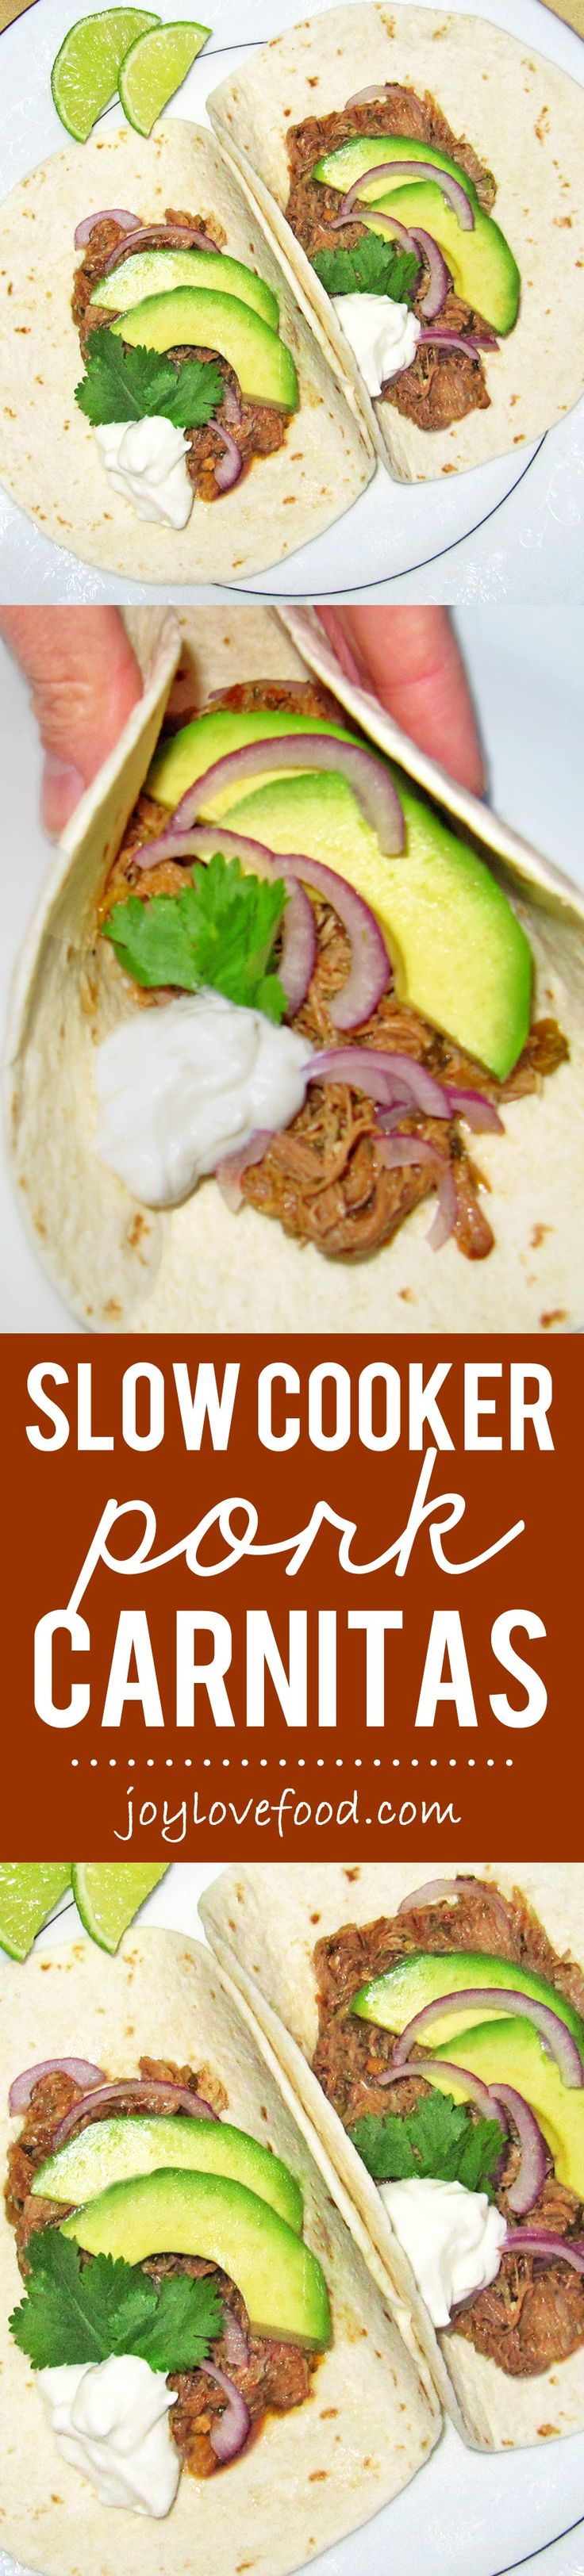 Slow Cooker Pork Carnitas - succulent, tender and flavorful pork with minimal work. Wrap these carnitas up in warm flour tortillas for delicious tacos, perfect for an easy family meal or a casual dinner party.